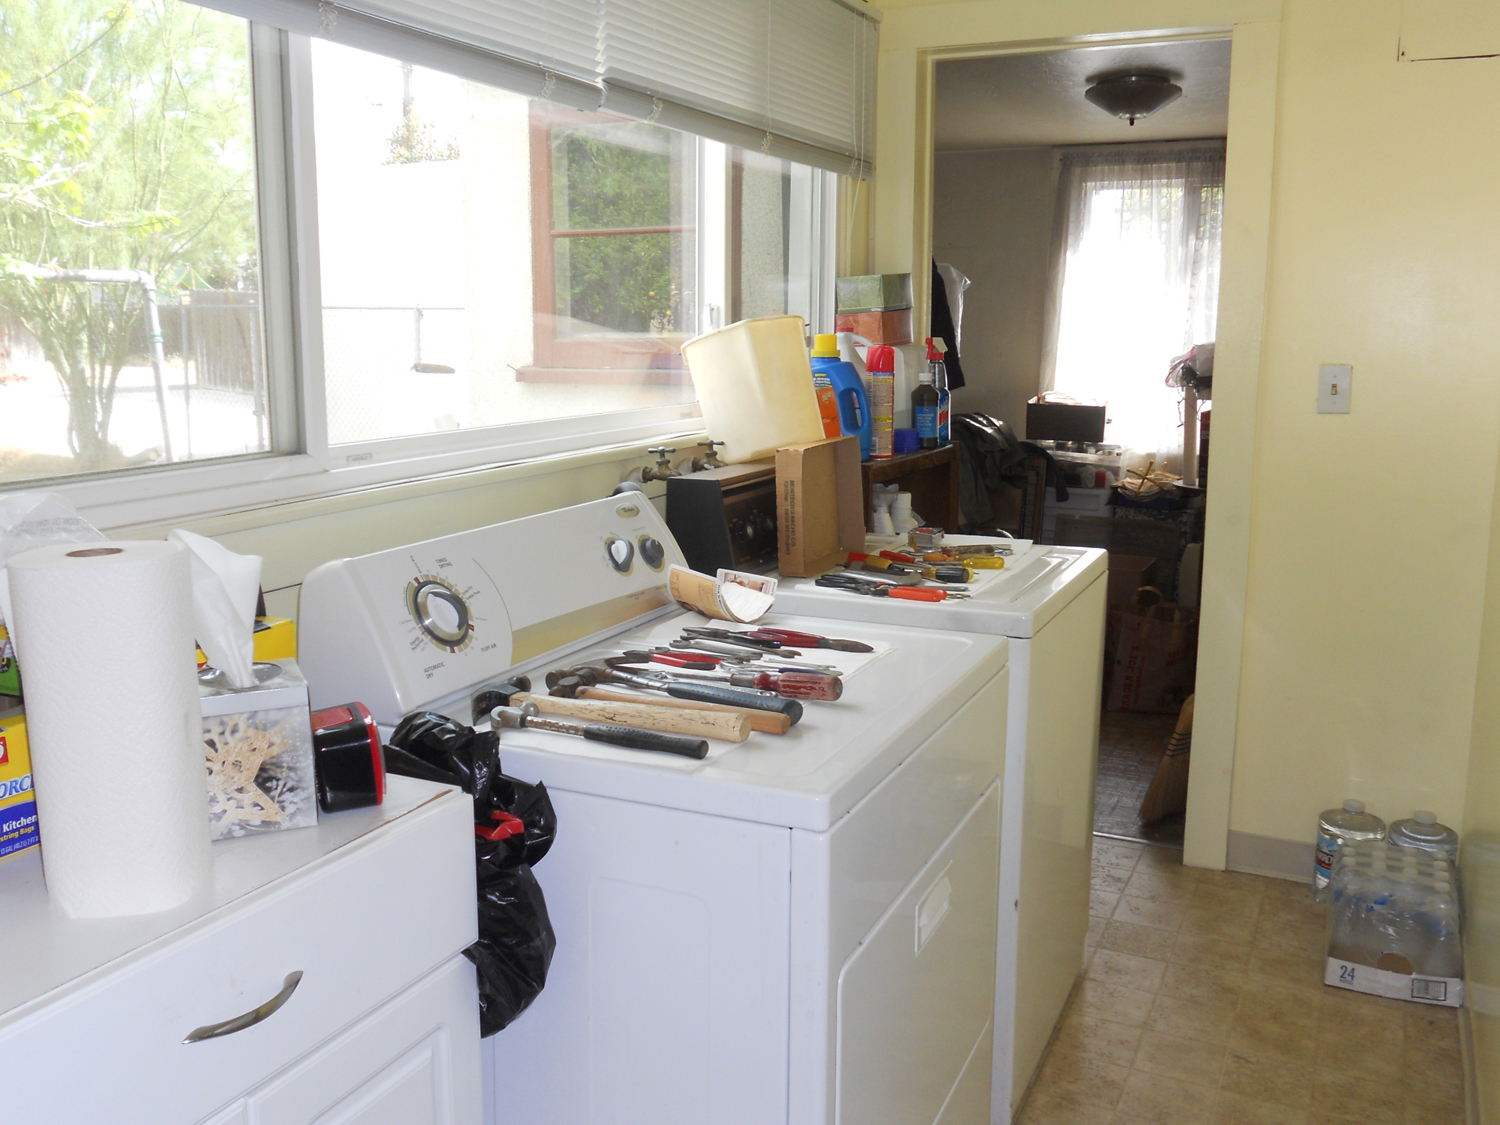 Separate indoor laundry room, with bonus room in the back. Homeowners are in the process of preparing for an estate sale; hence, the clutter.